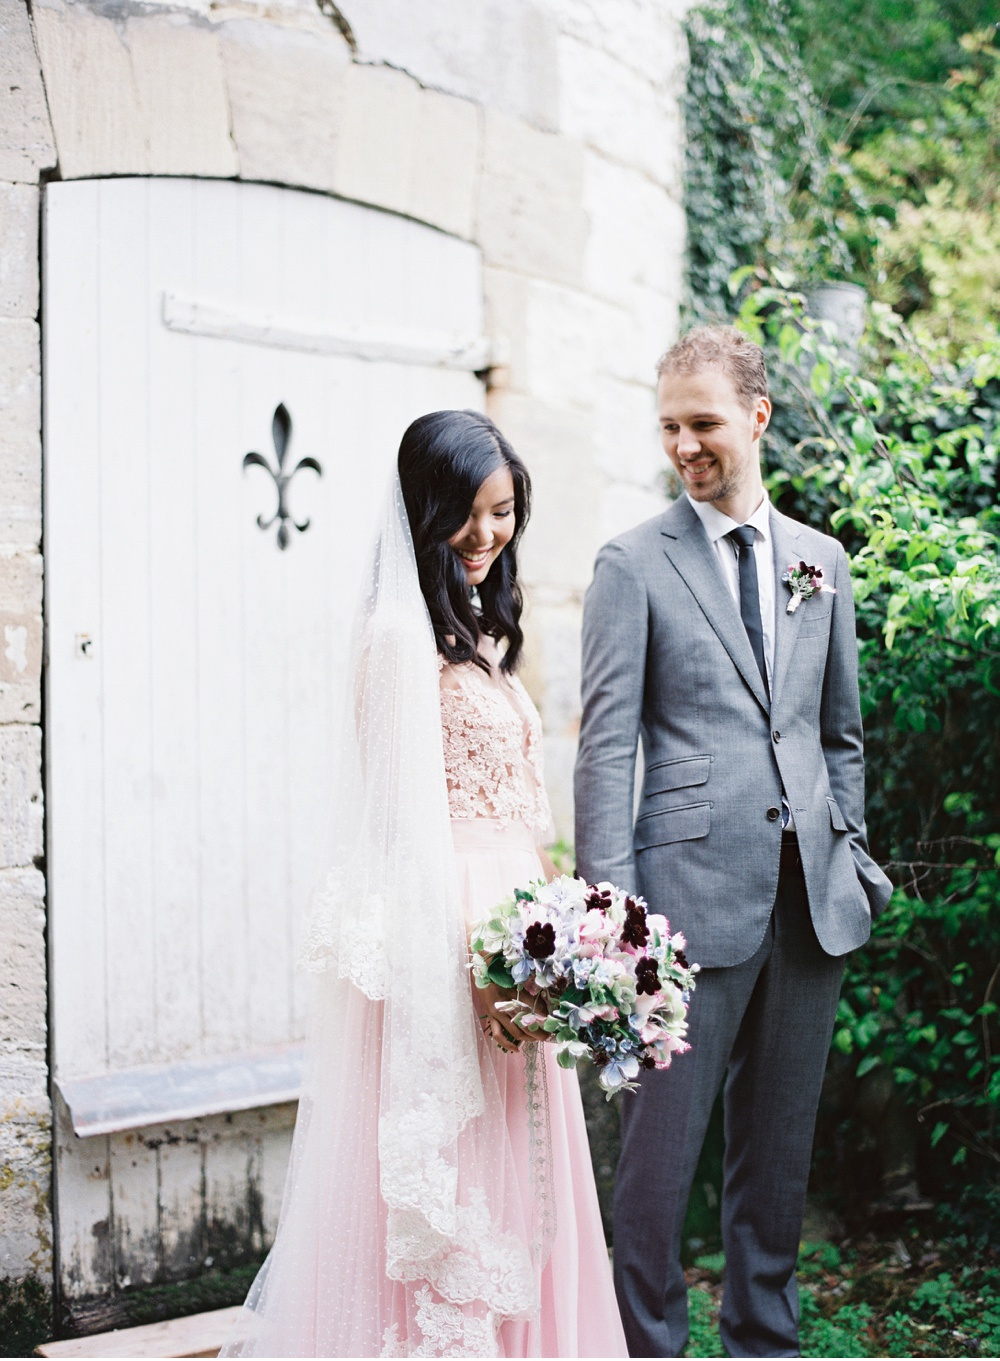 Destination_Wedding_France_©MadalinaSheldon_0007.jpg